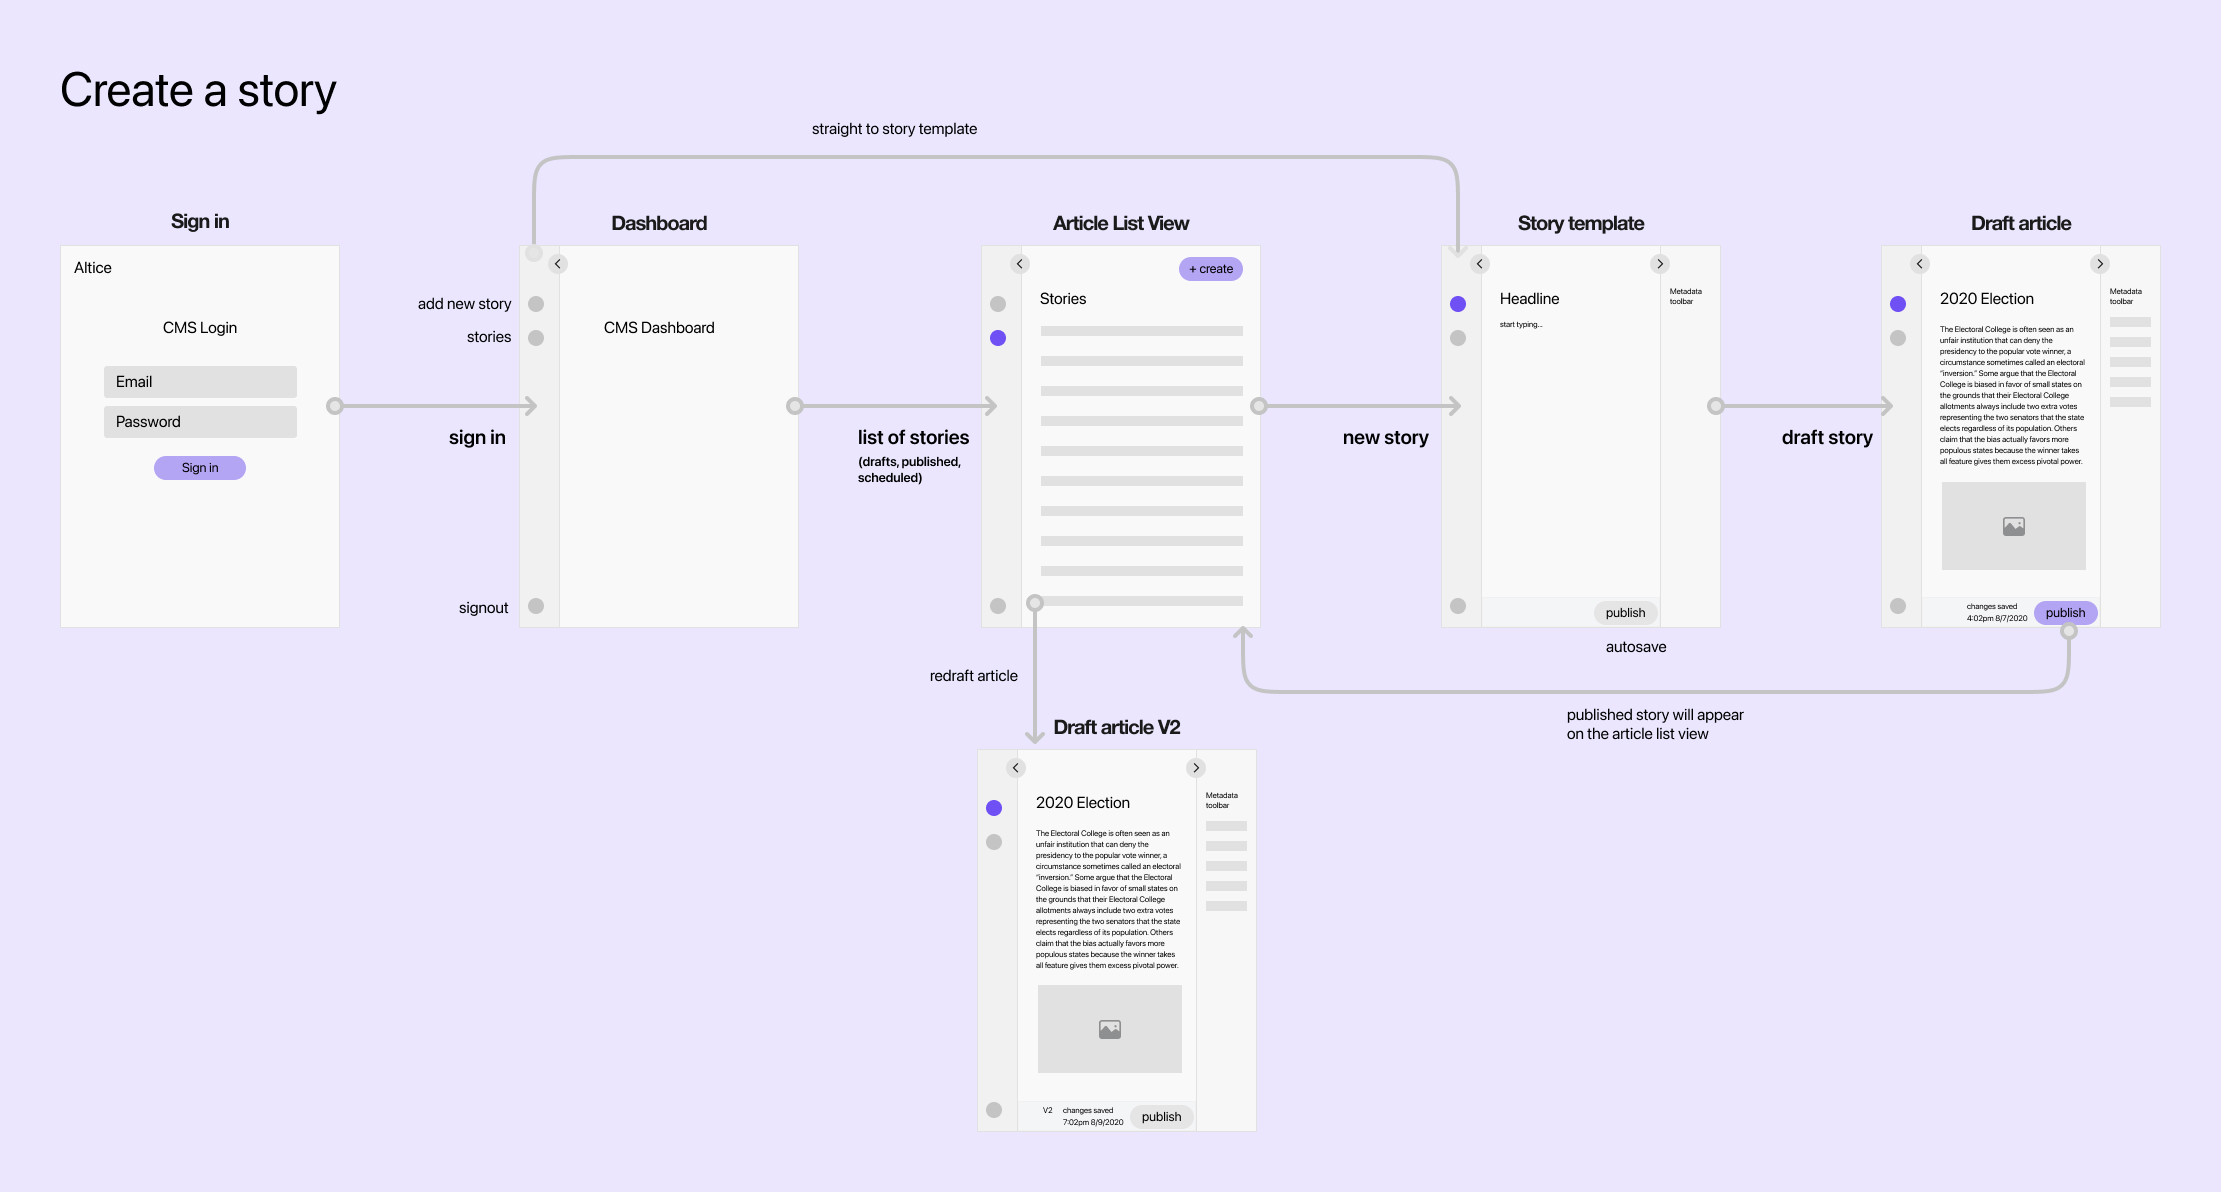 create a story user flow – 2